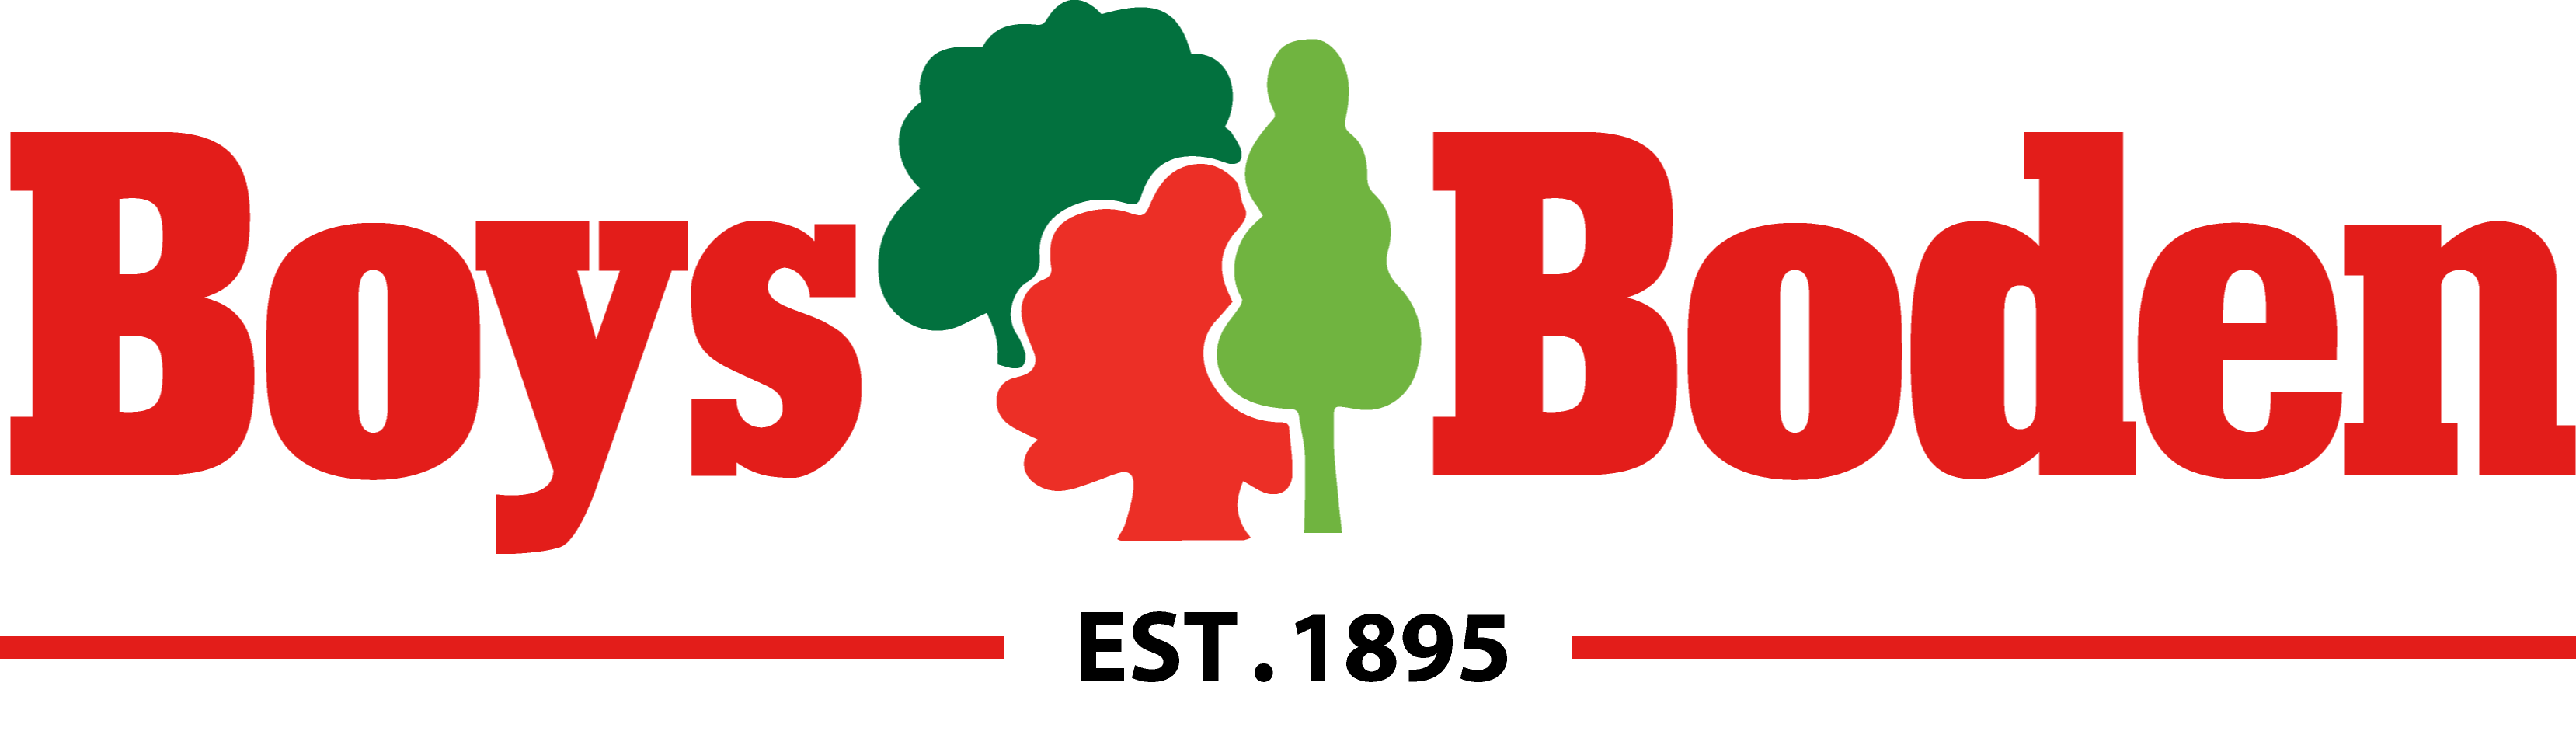 Boys & Boden Ltd Logo